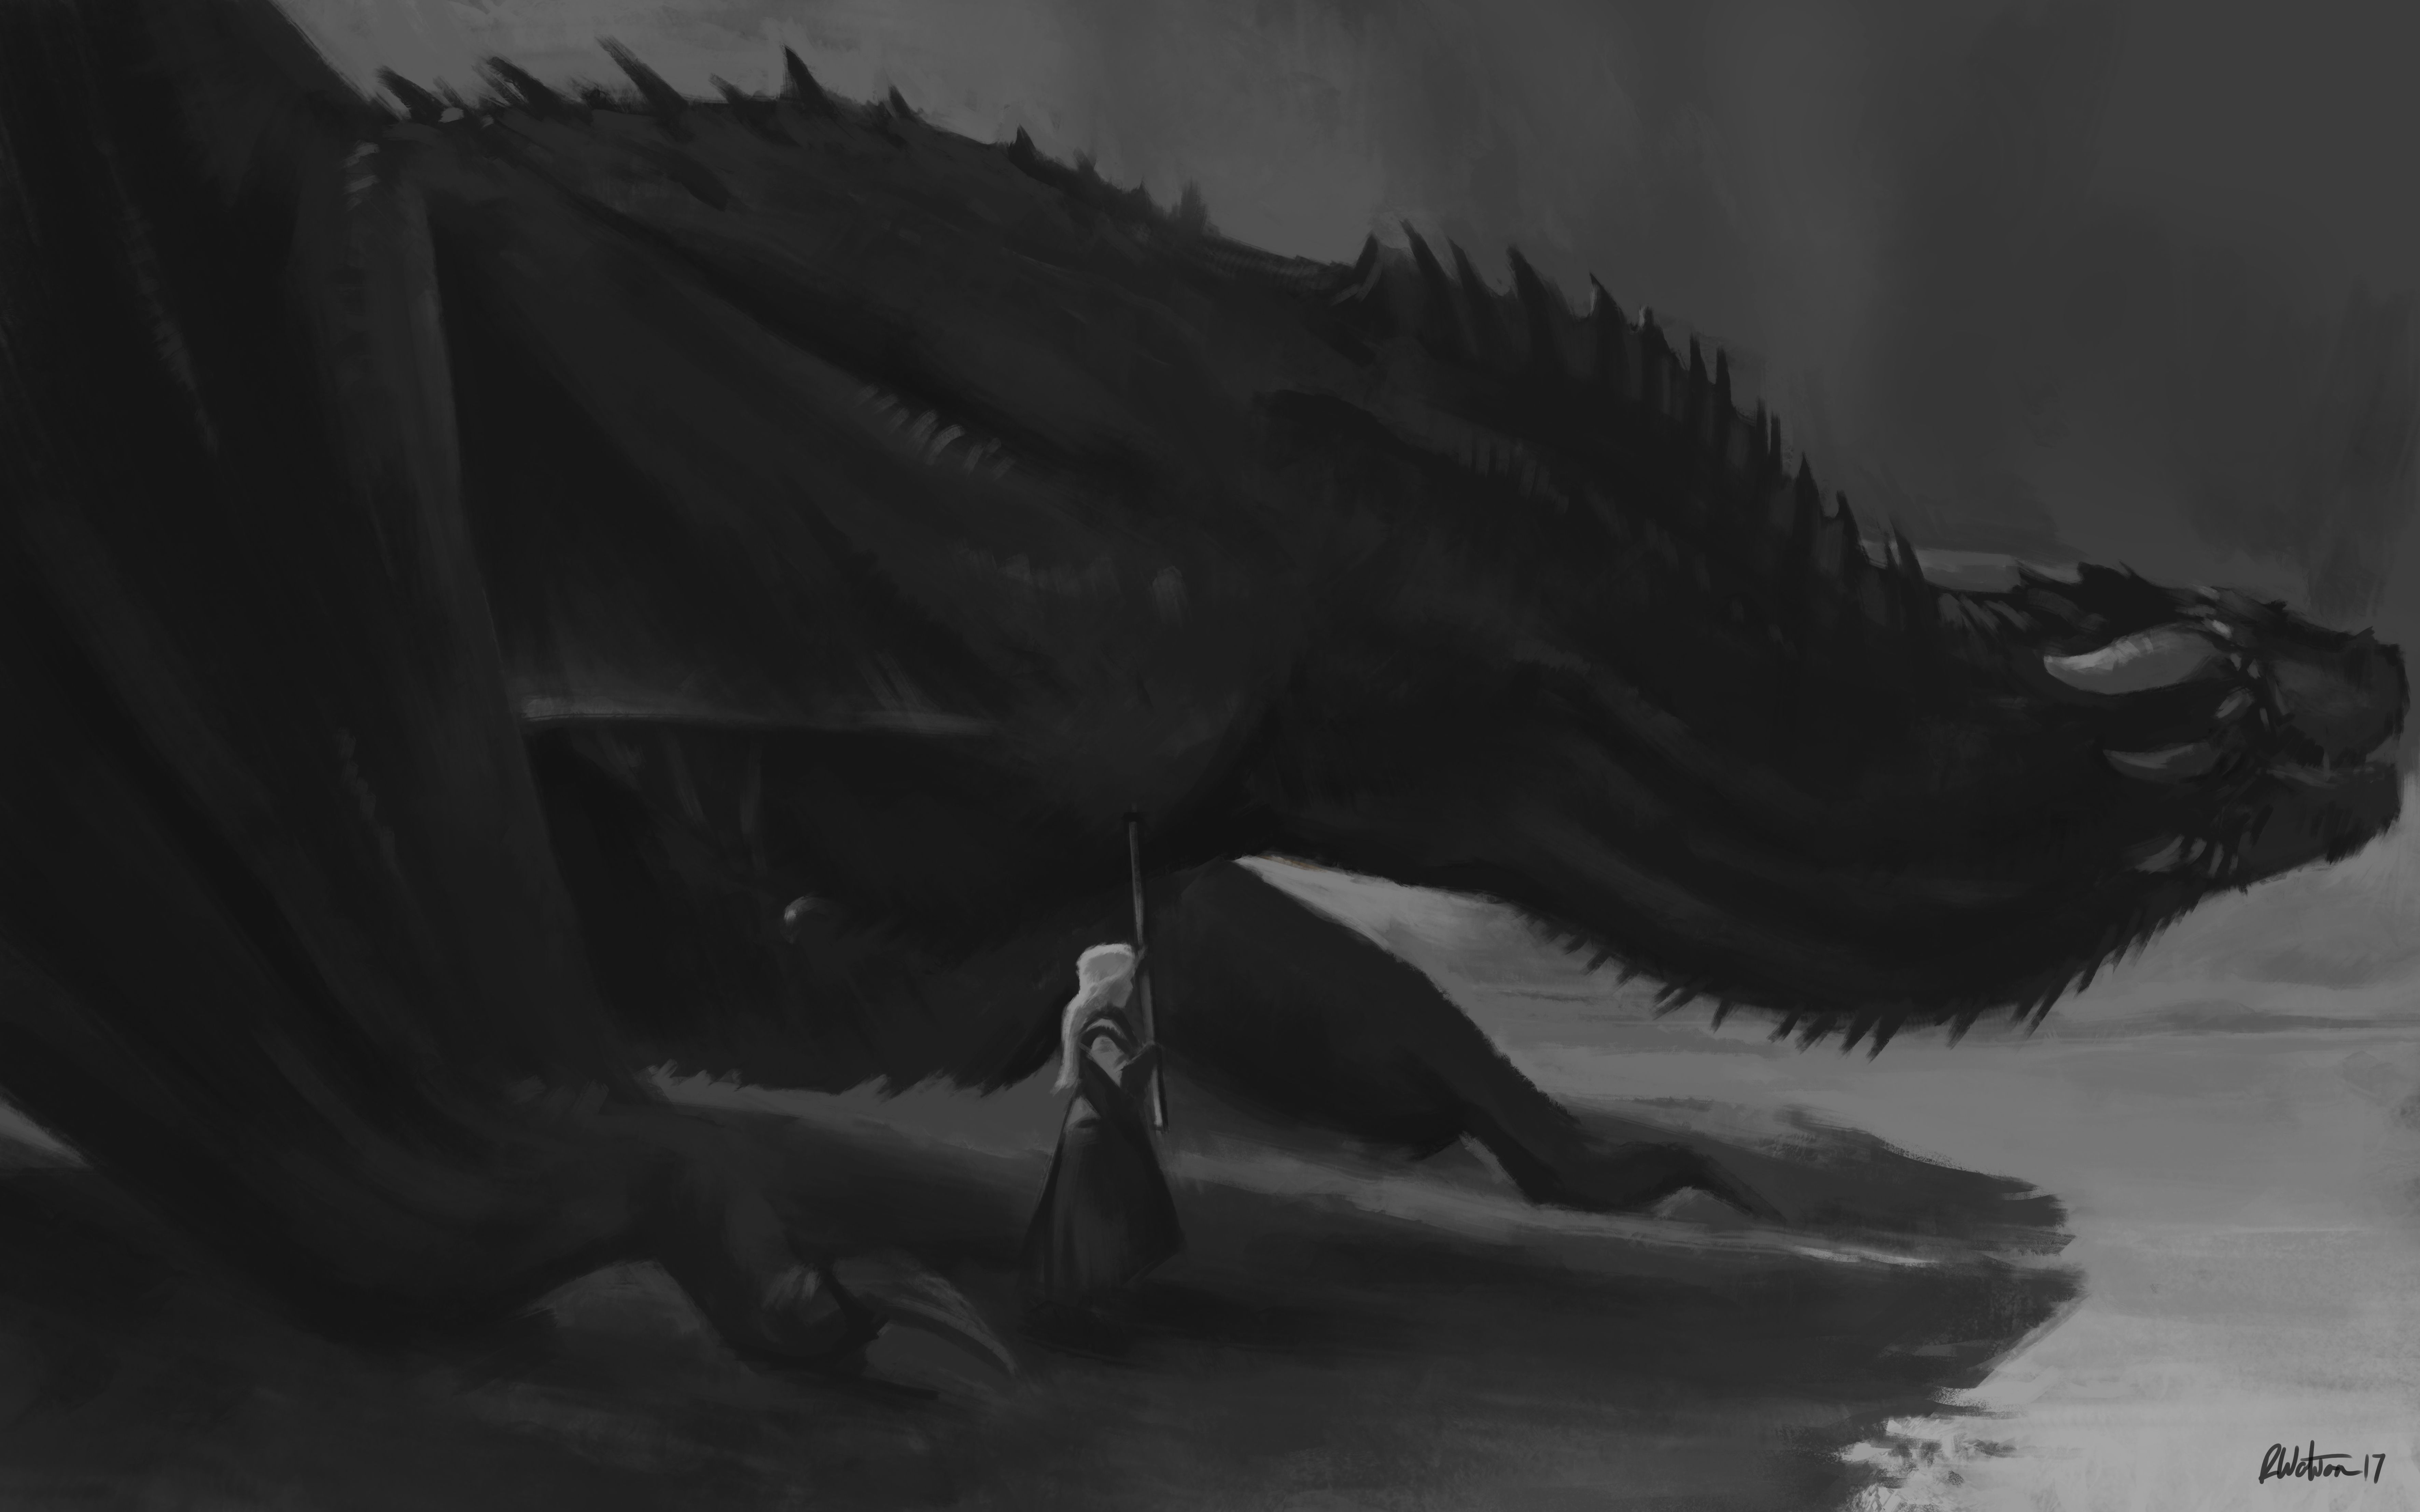 game of thrones 1920x1080, game of thrones dragon images